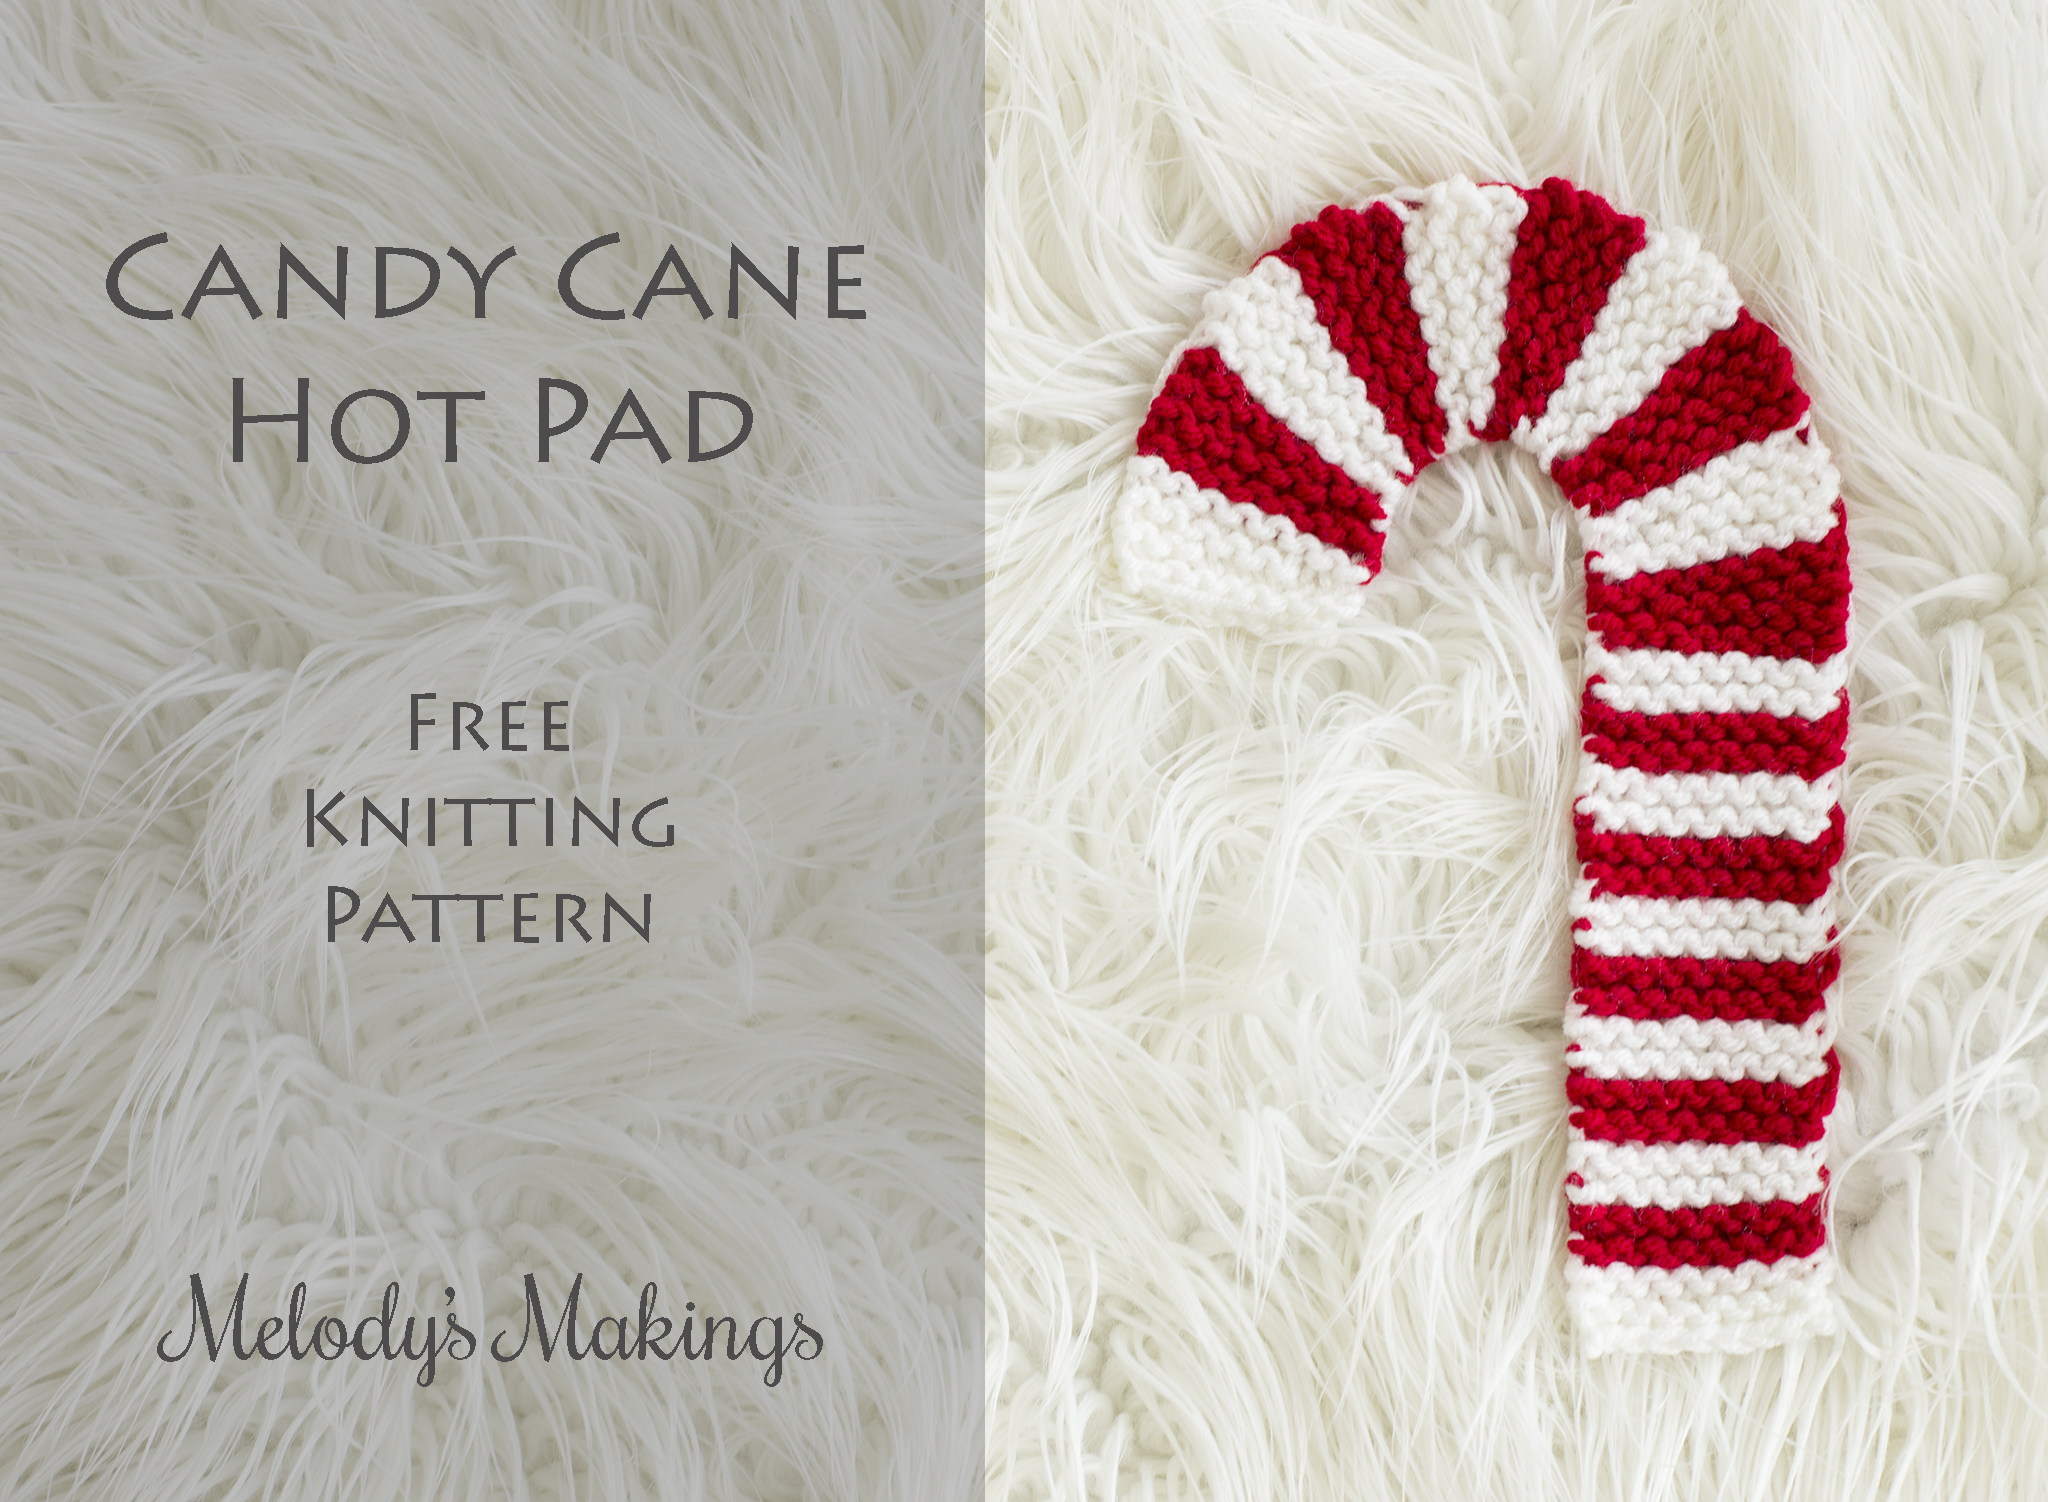 Candy Cane Hot Pad